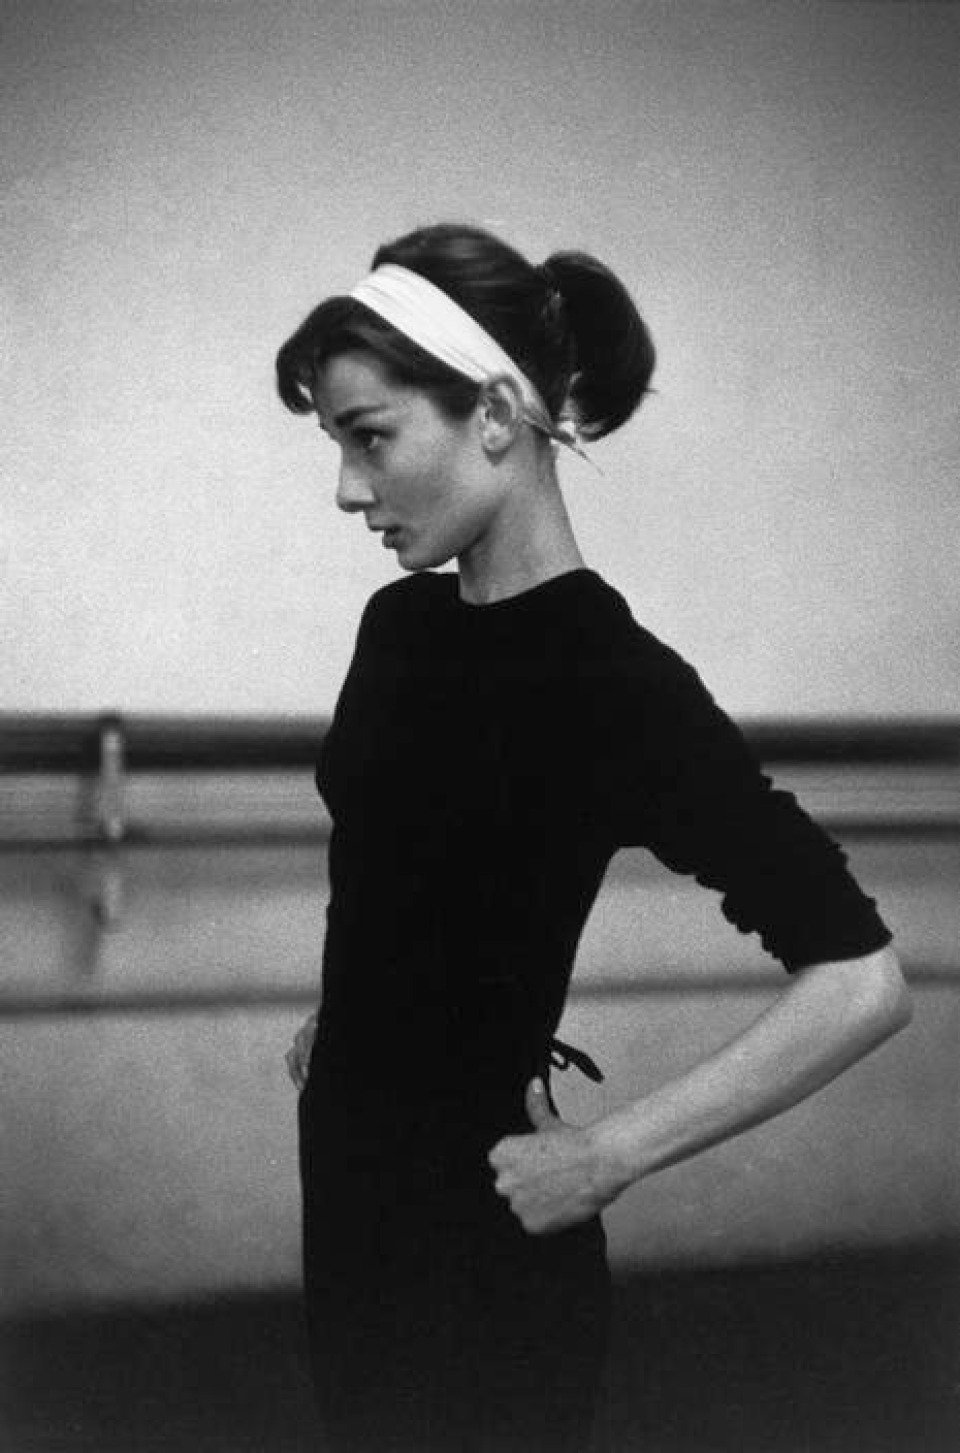 david_seymour_paris_audrey_hepburn_headband_960x640